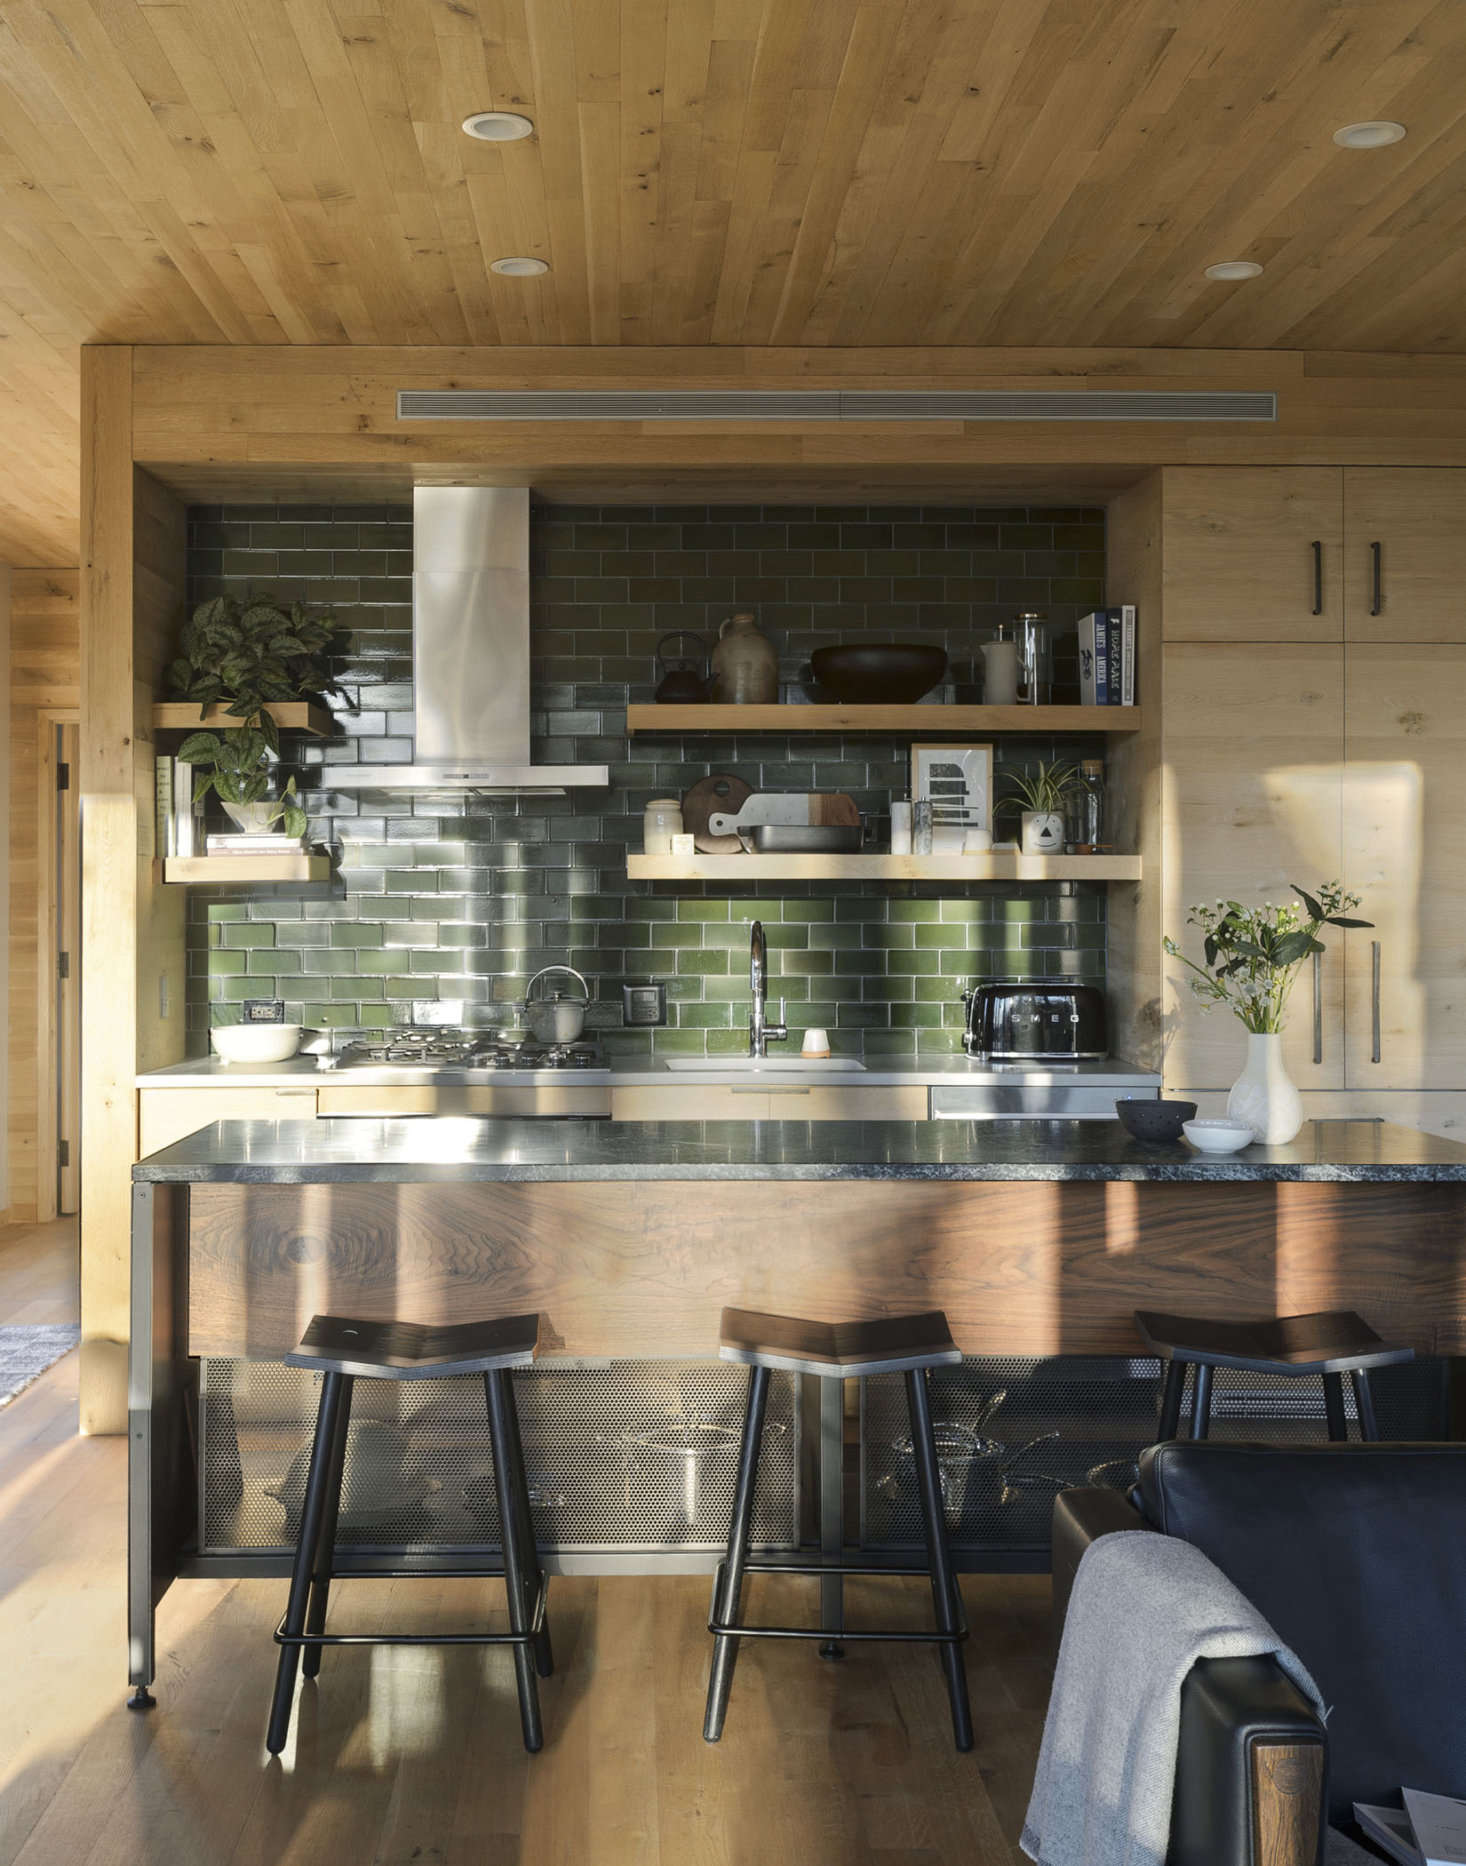 Tucked into the walnut kitchen island are Mitre stools from Souda. The appliances are by Fisher & Paykel.